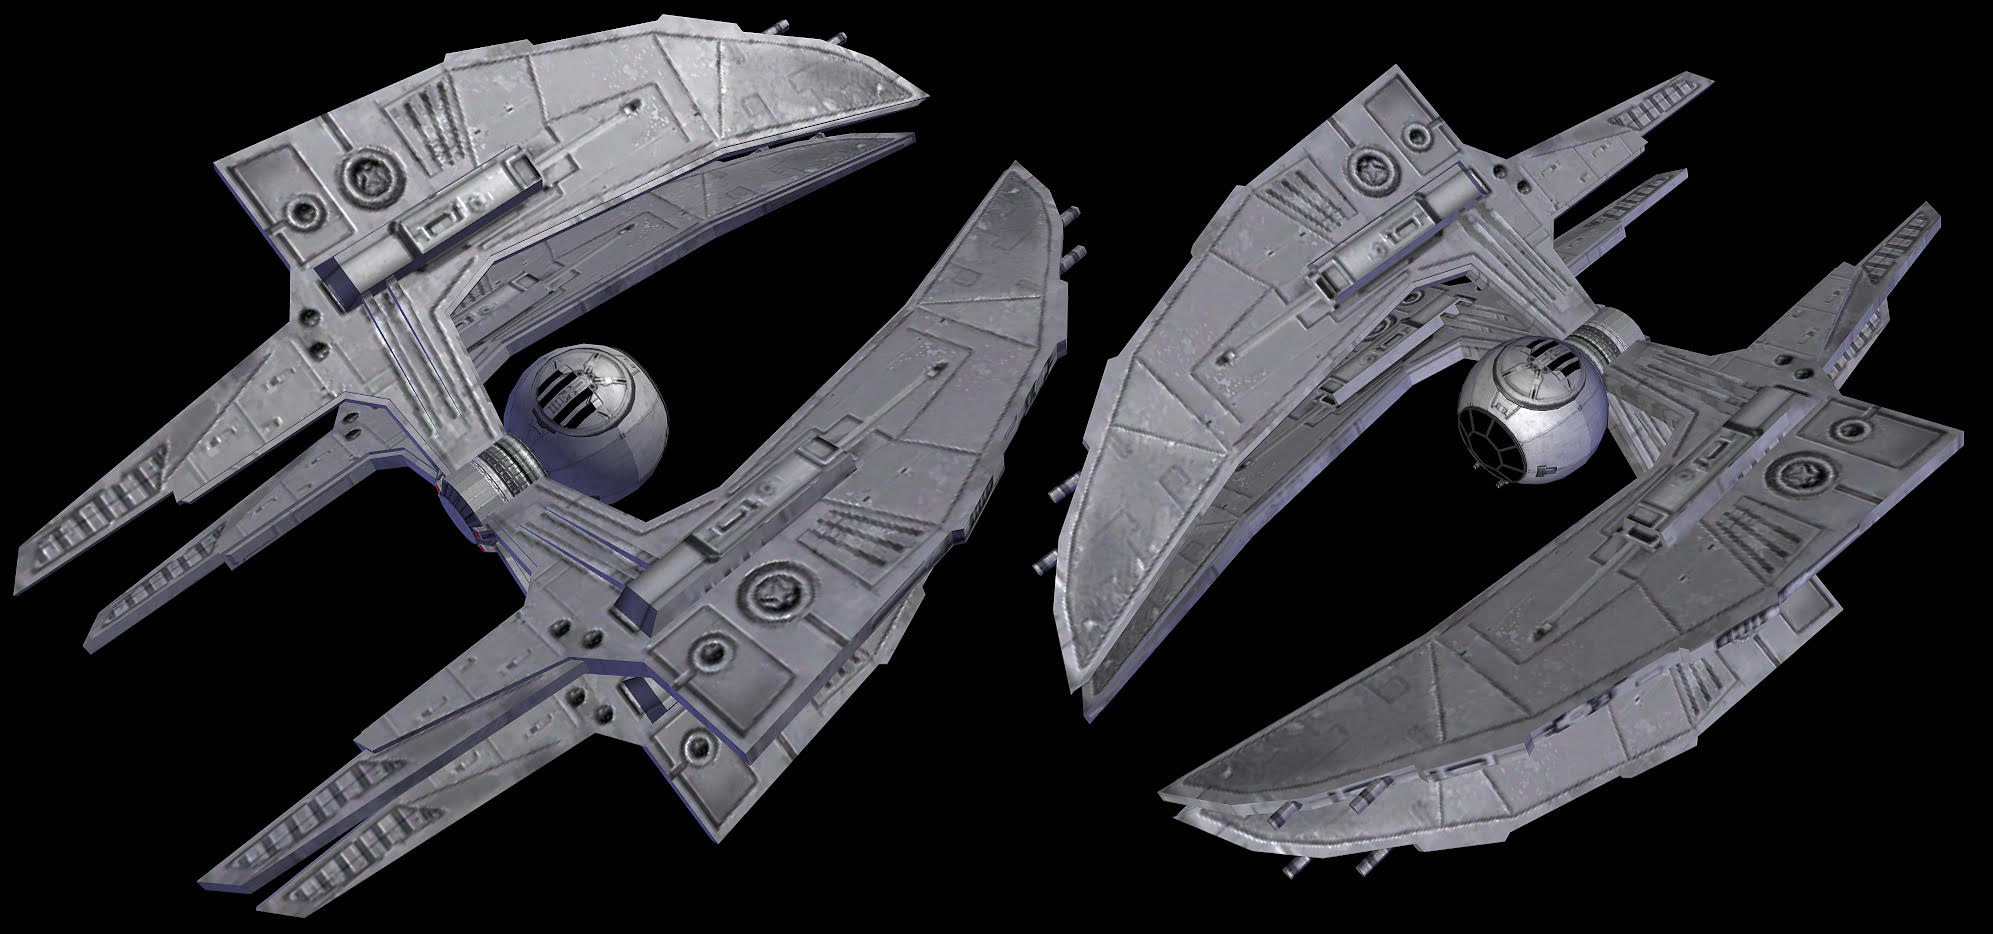 Tie Reaper Star Wars Pictures to Pin on Pinterest